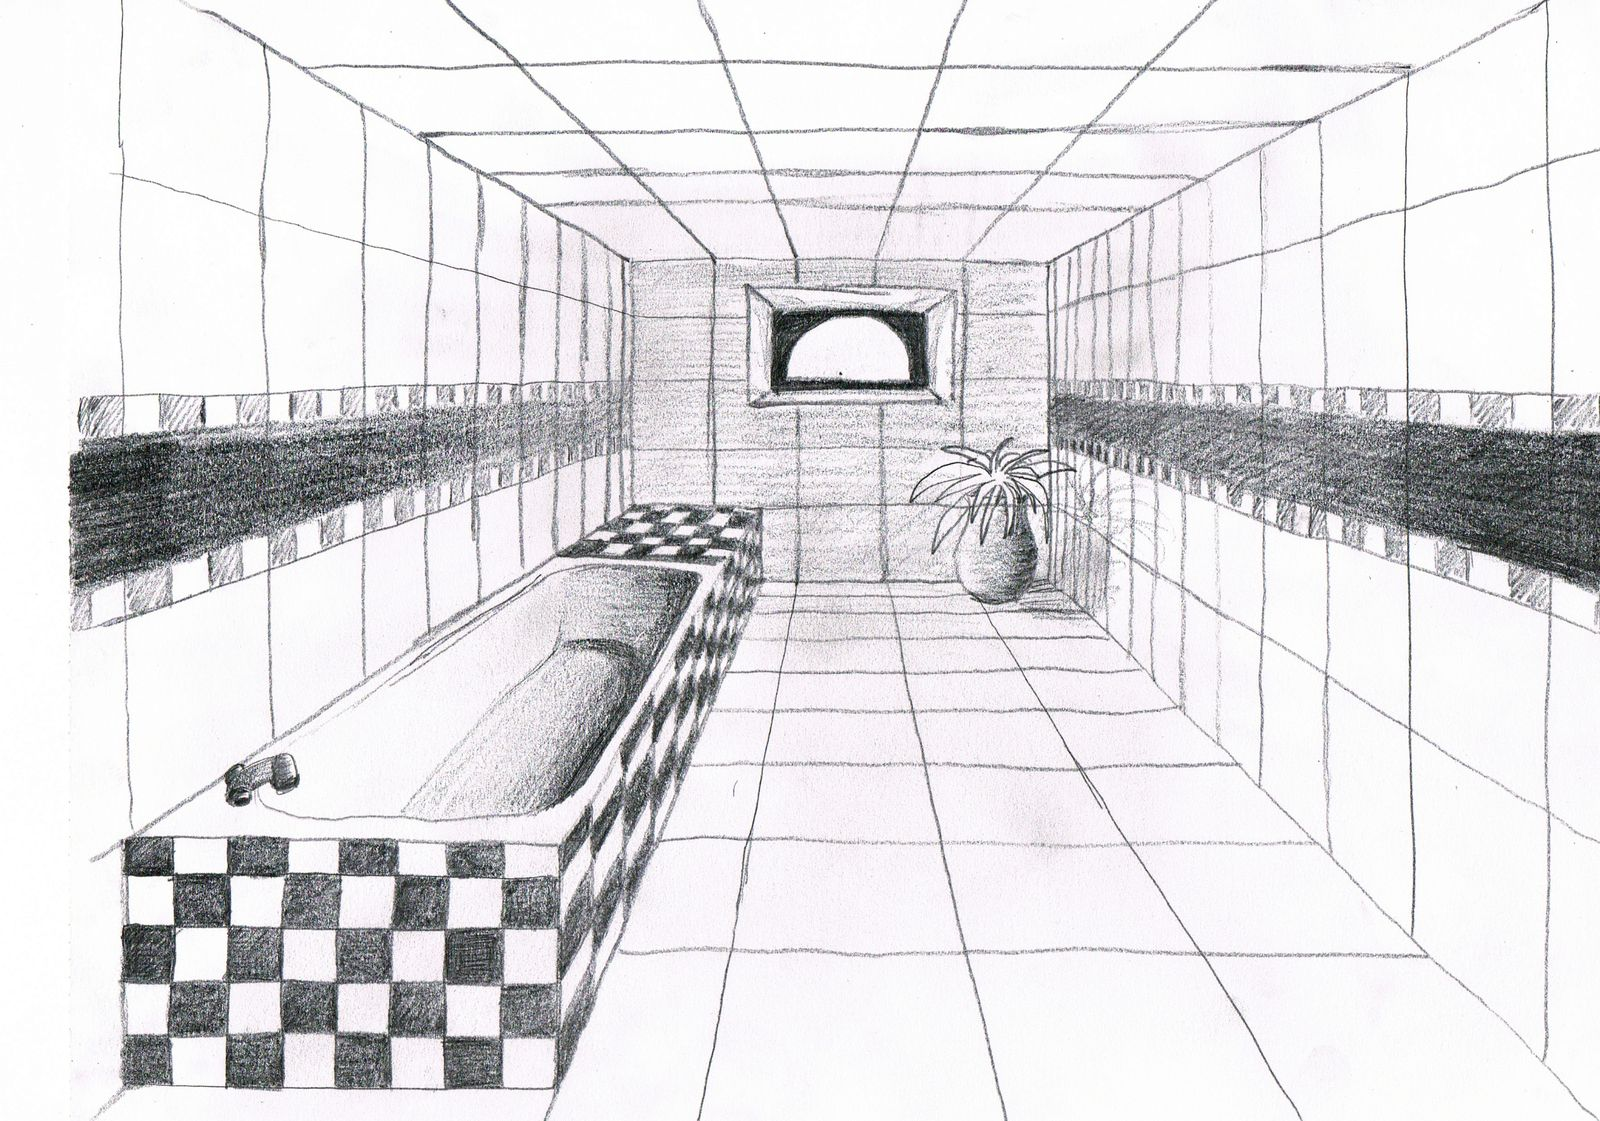 Modele Batiment En Perspective : Initiation au dessin de perspective emmy be créa